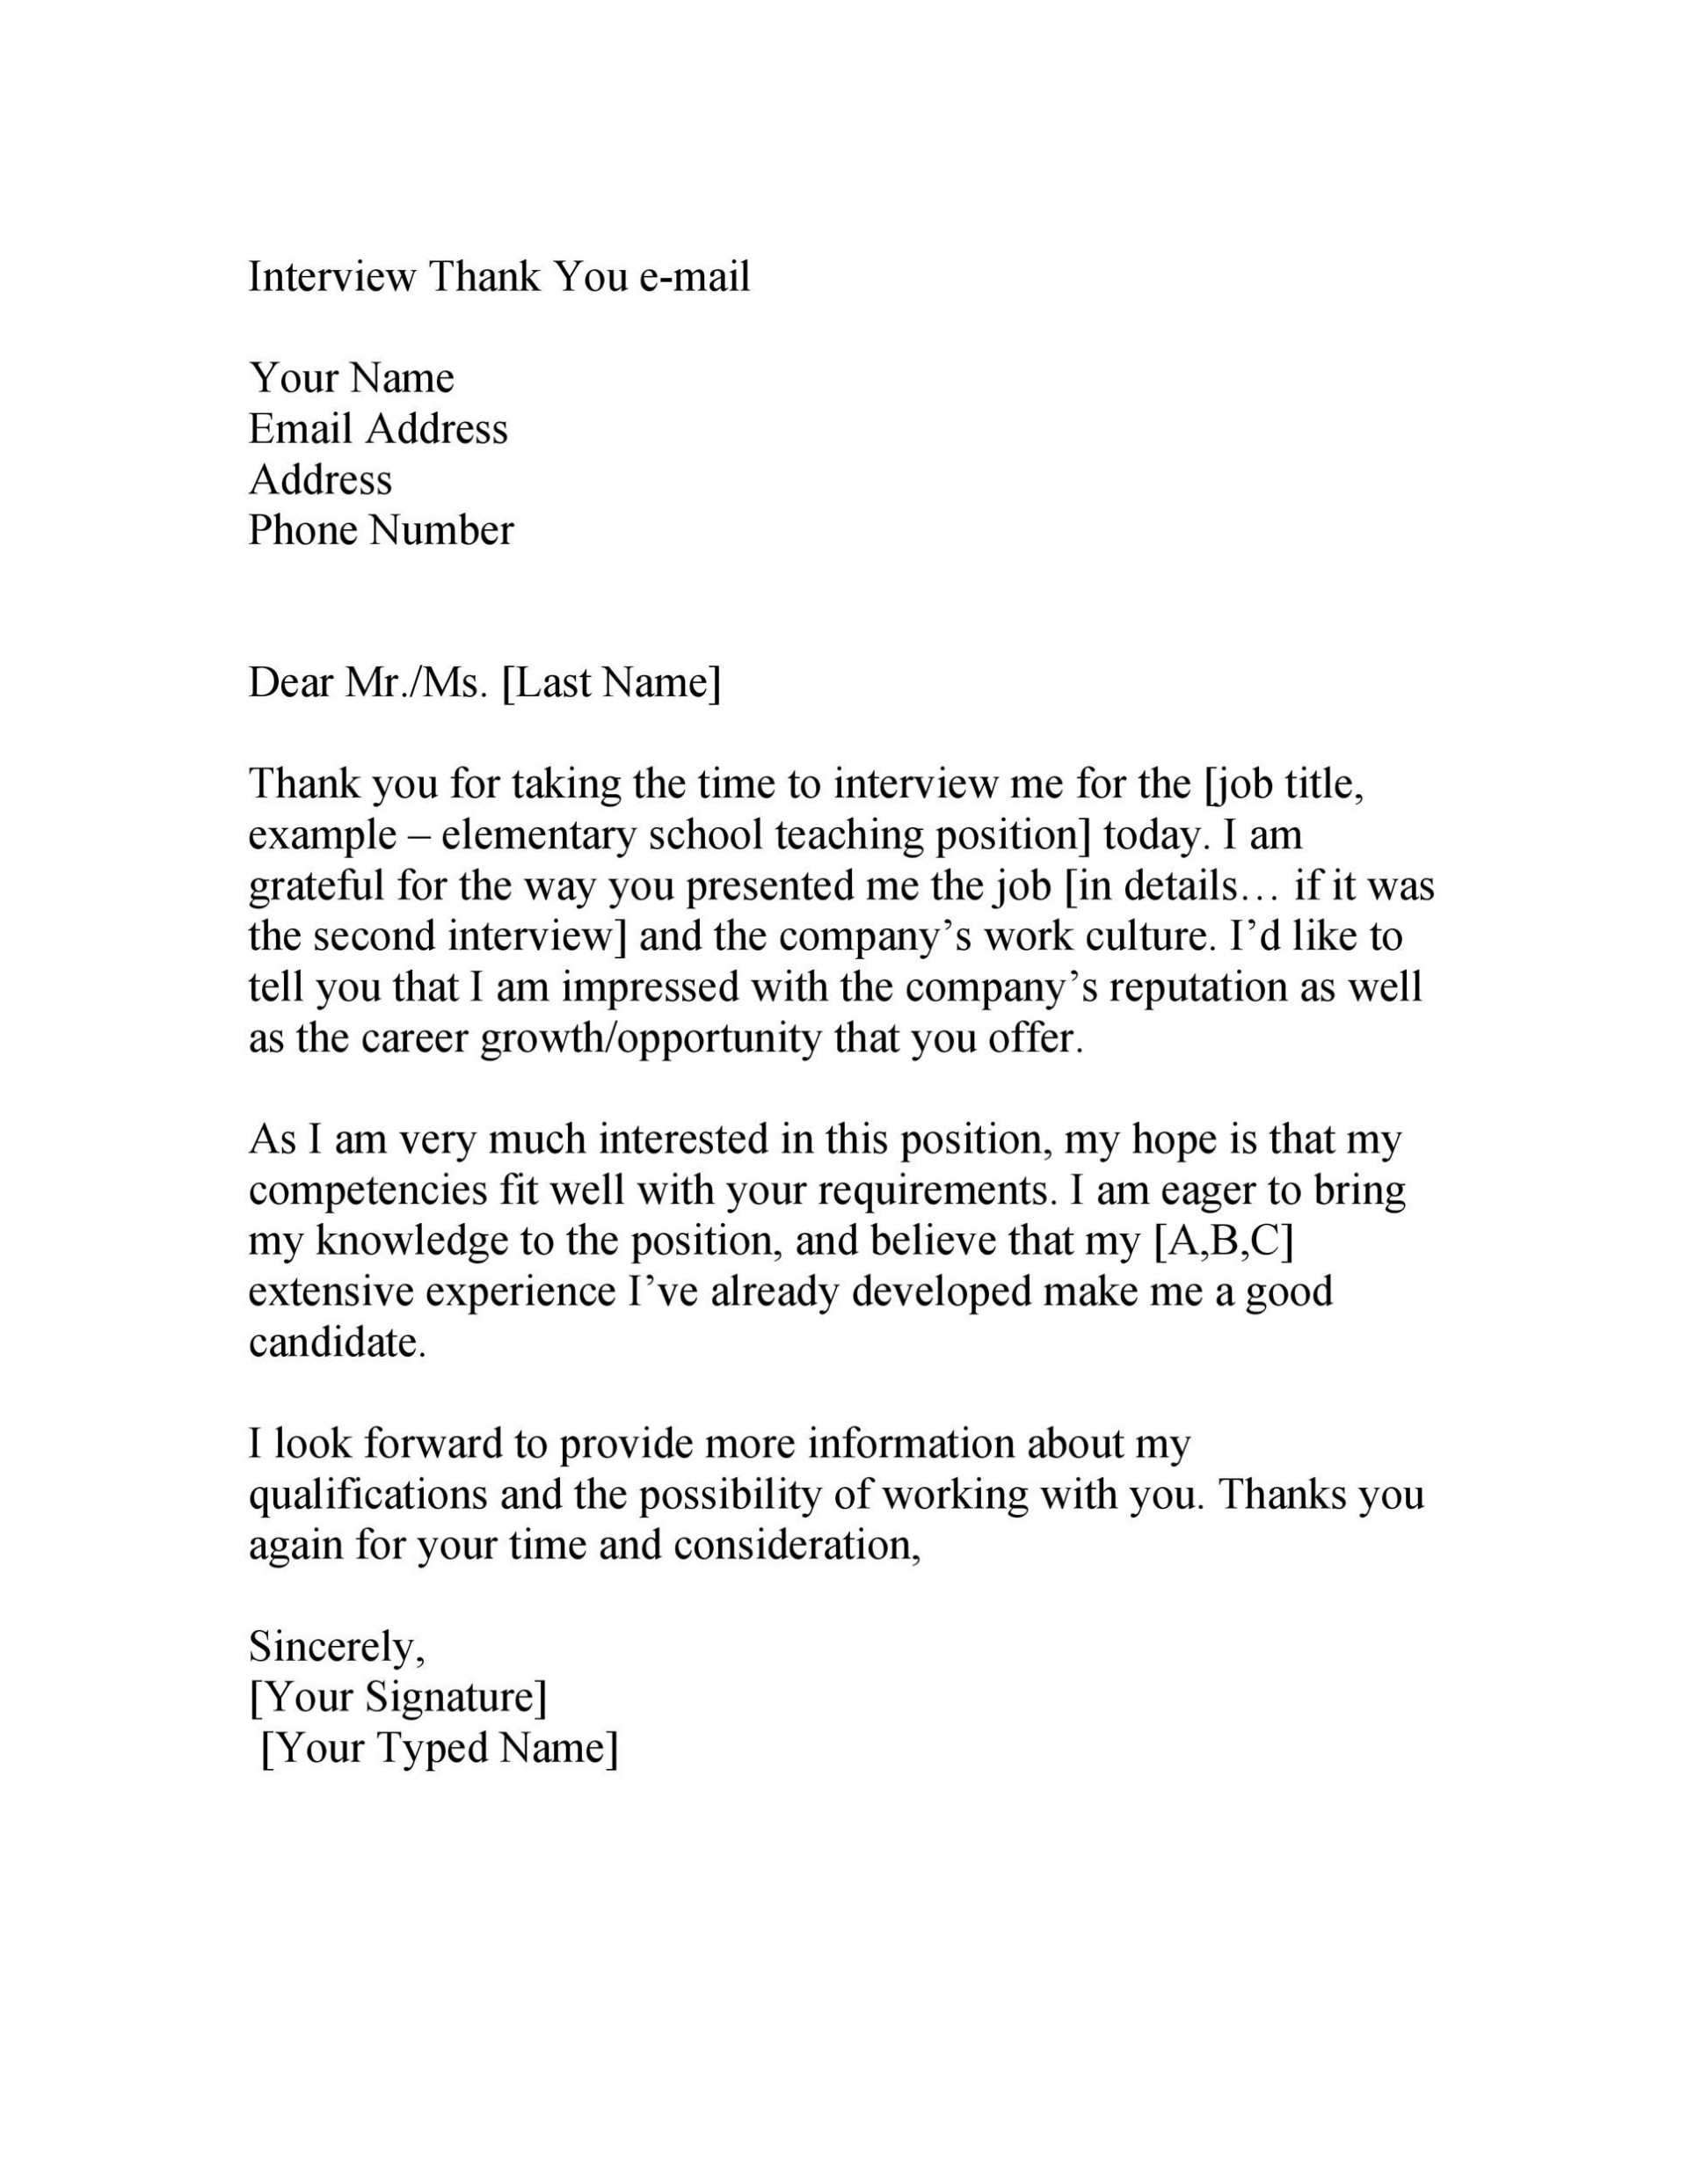 007 Archaicawful Thank You Note Template After Phone Interview High Definition  Sample Letter Example1920